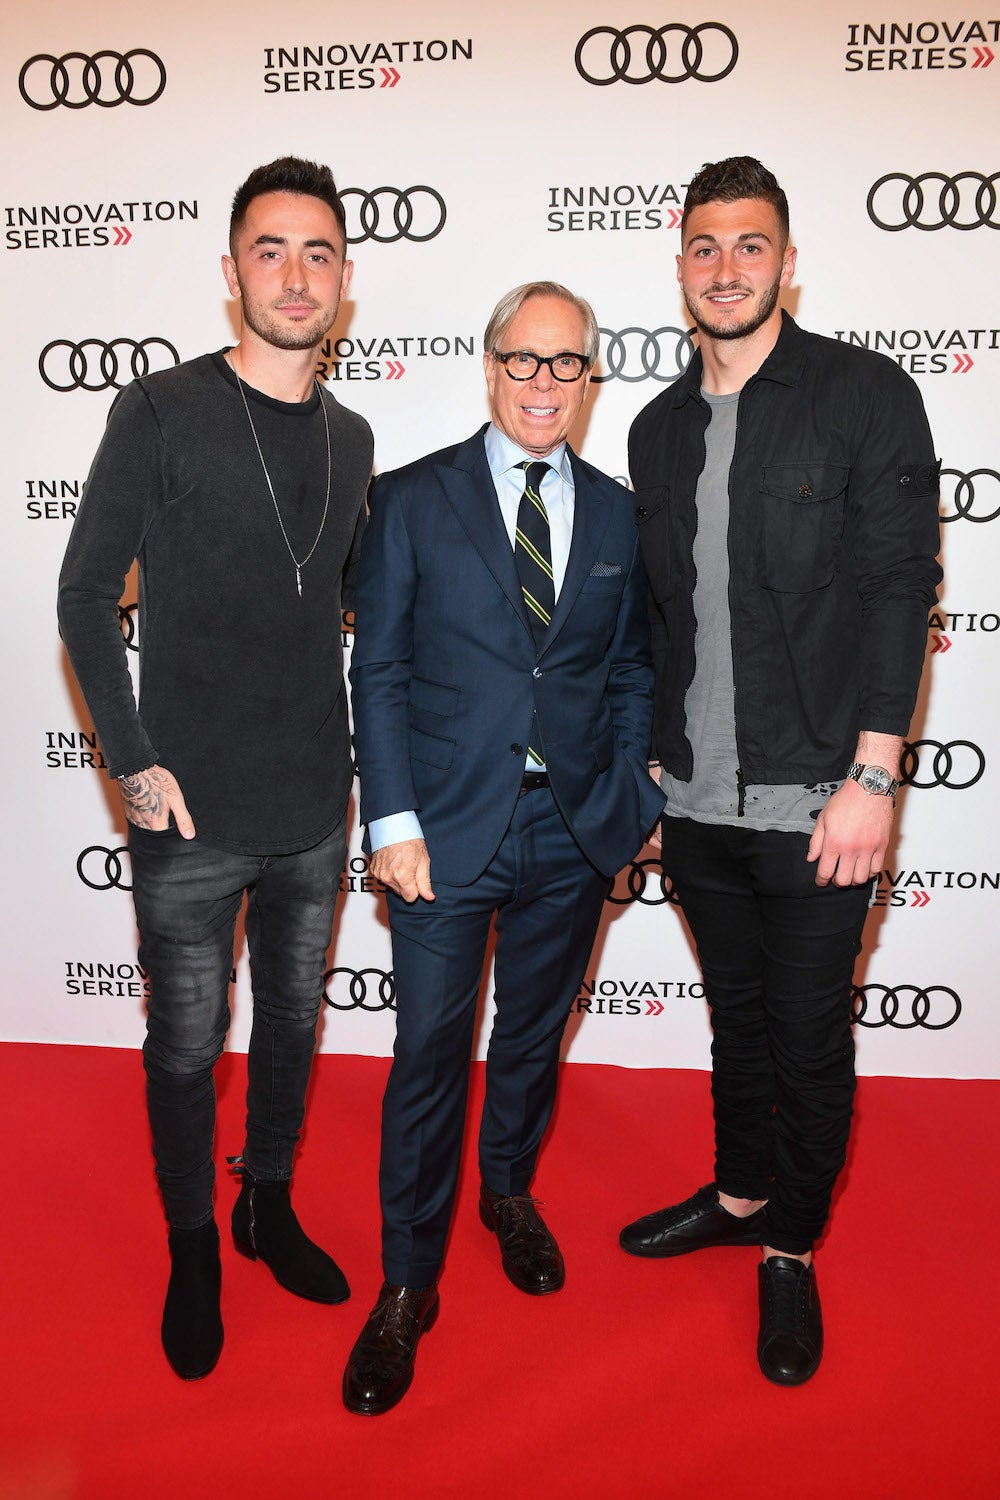 Toronto FC's Jay Chapman and Alex Bono with Tommy Hilfiger at the 3rd Annual Audi Innovation Series